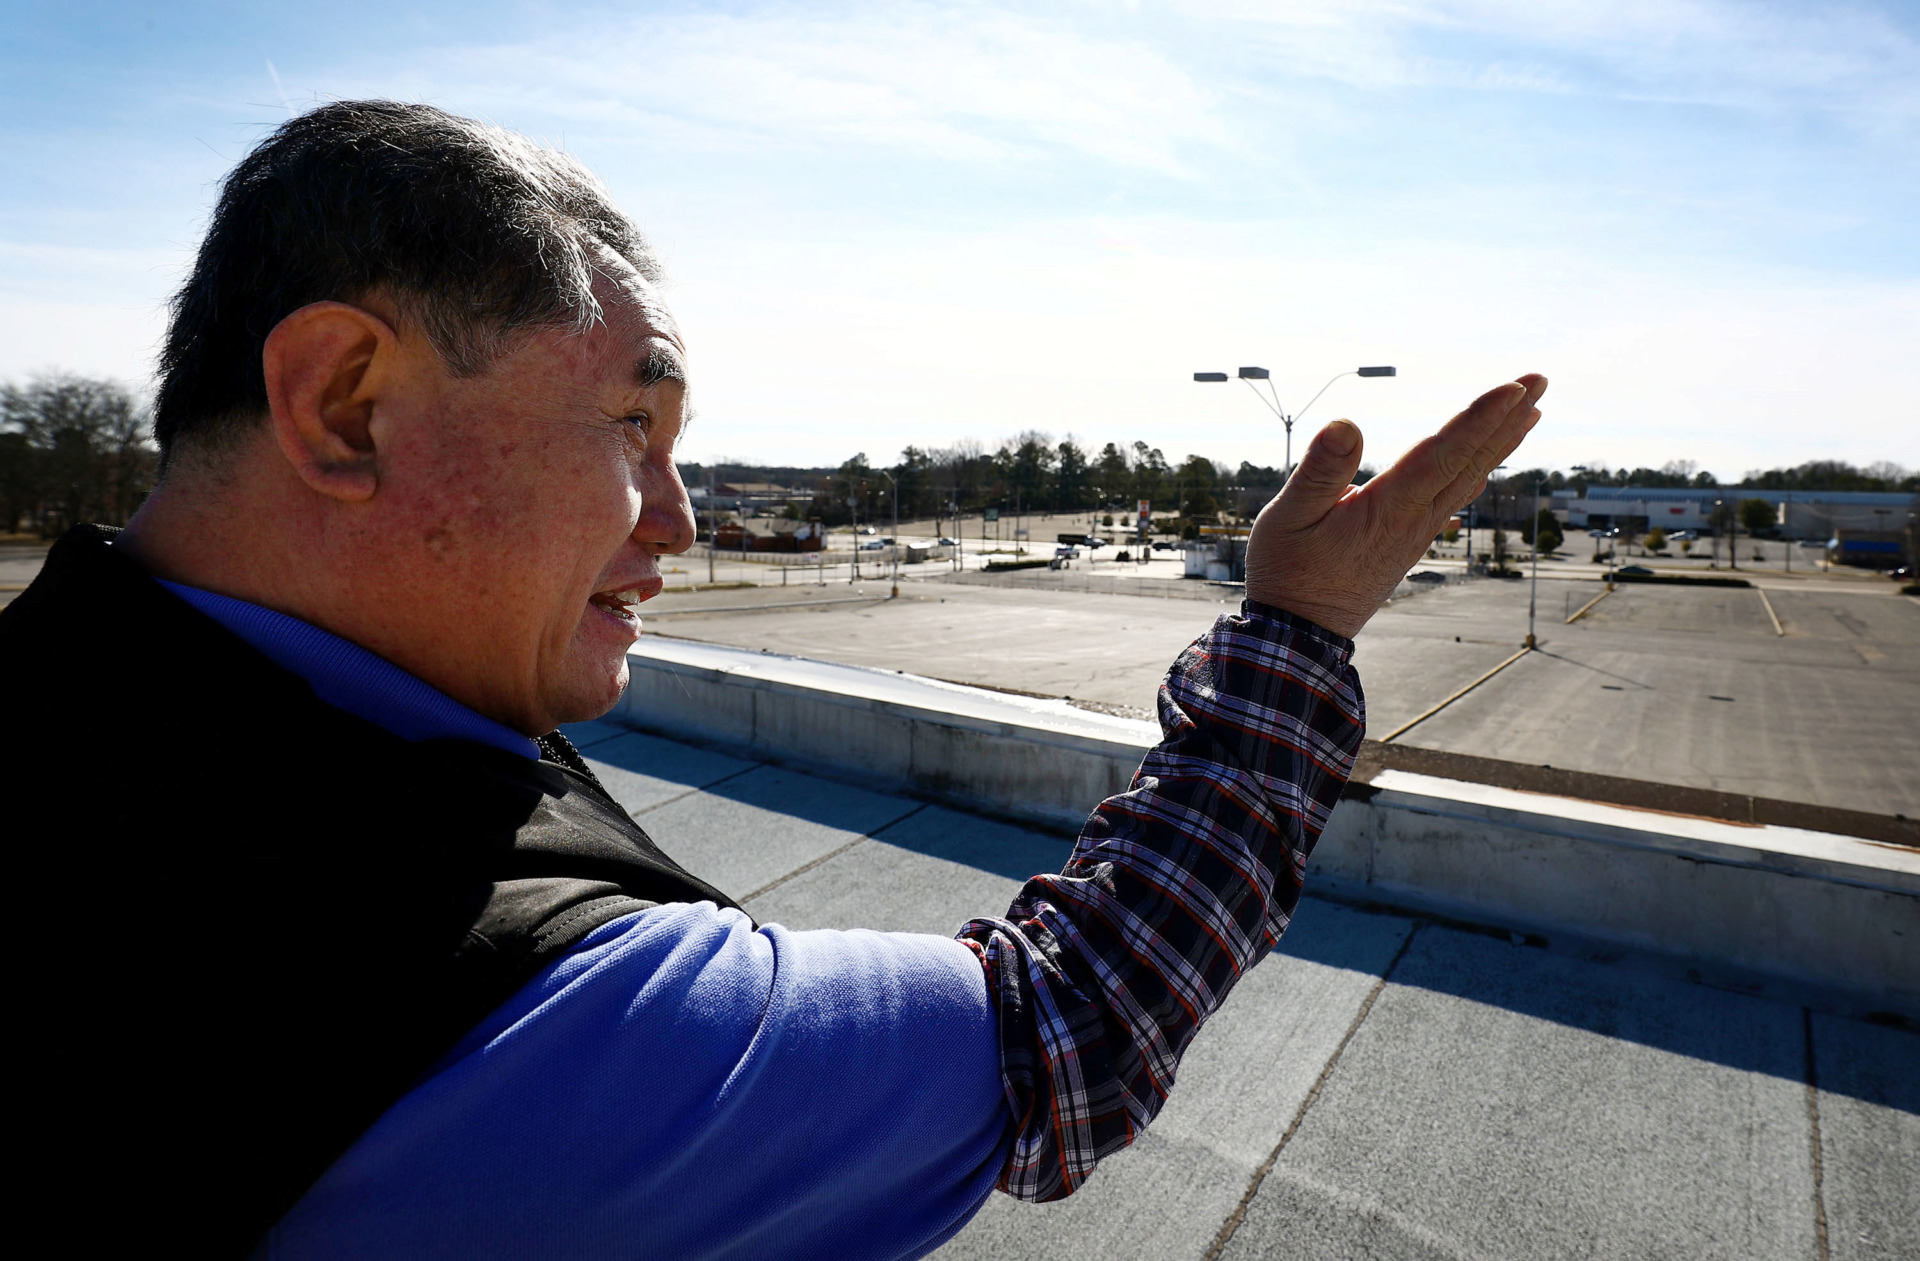 <strong>Ki Kim, owner of JD USA, a jewelry store adjacent to Southbrook Mall, has complained about mall customers and 18-wheel service trucks using his parking lot without permission. Kim says he owns the property and is seeking a special permit to make it a for-pay parking lot.</strong> (Houston Cofield/Daily Memphian)